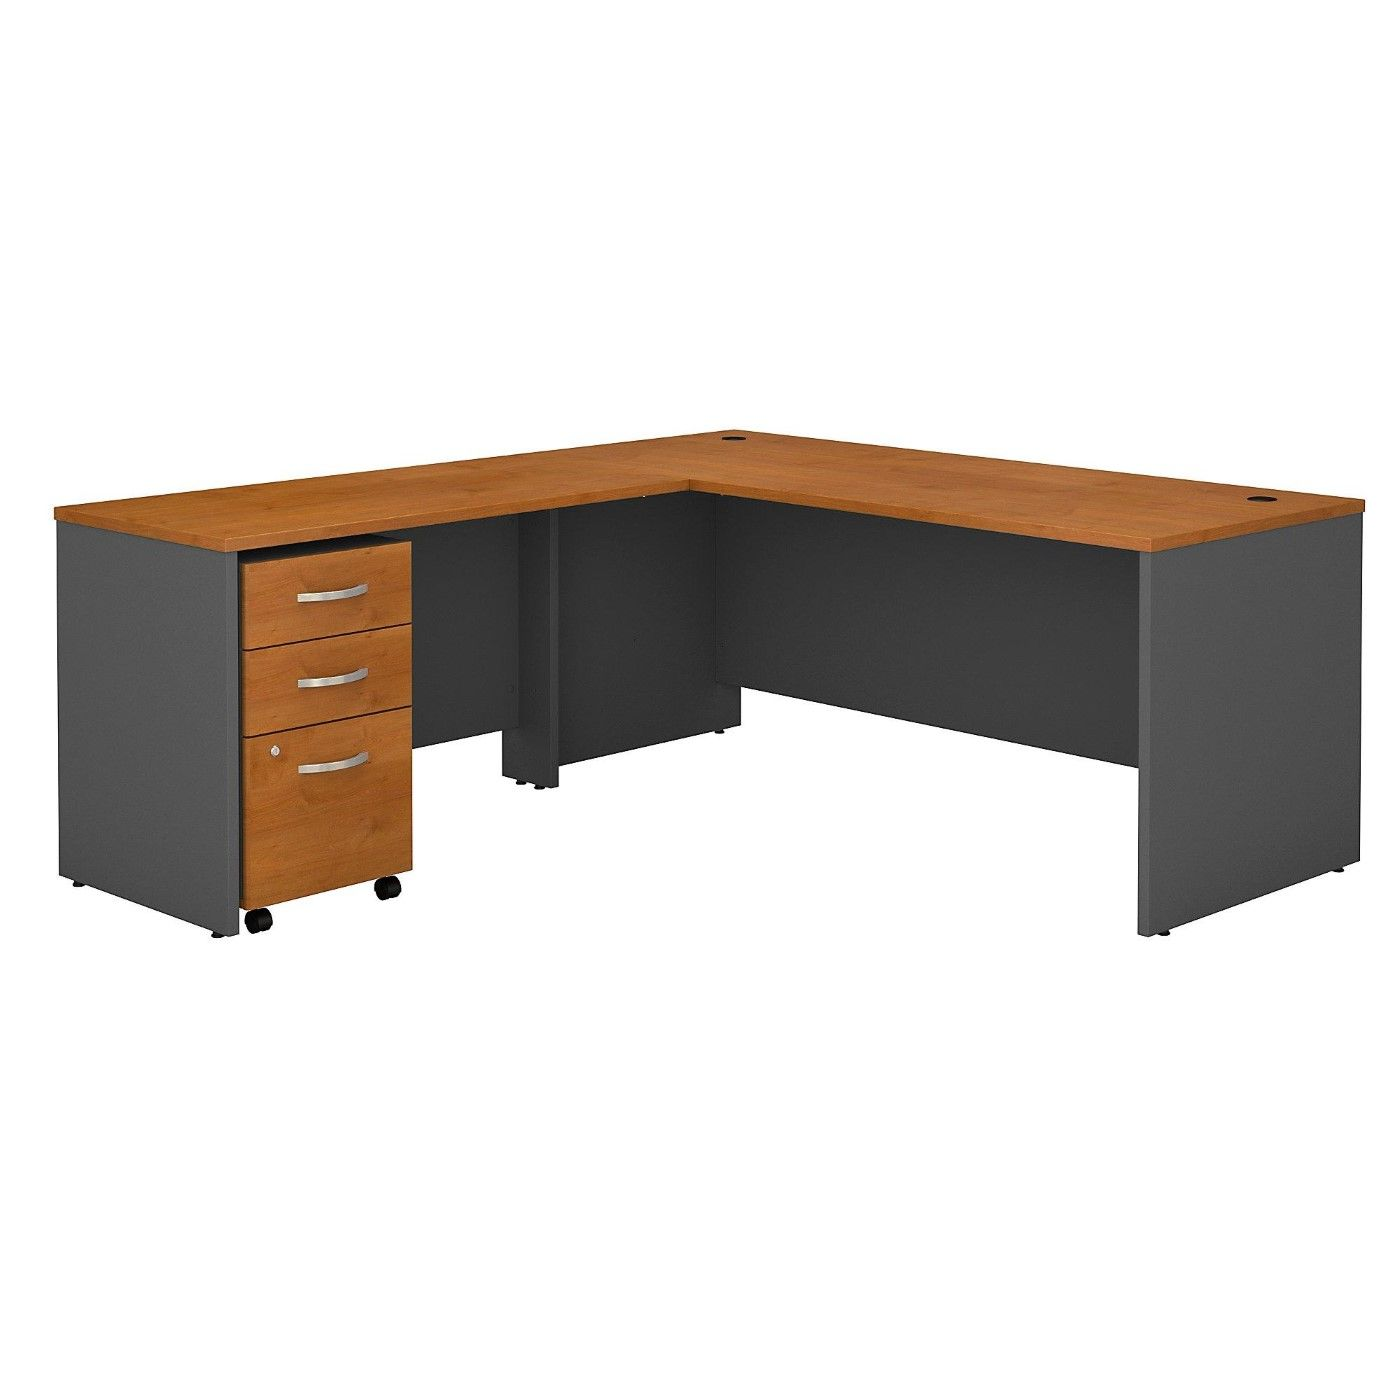 <font color=#c60><b>BUSH BUSINESS FURNITURE SERIES C 72W L SHAPED DESK WITH 48W RETURN AND MOBILE FILE CABINET. FREE SHIPPING</font></b></font></b>